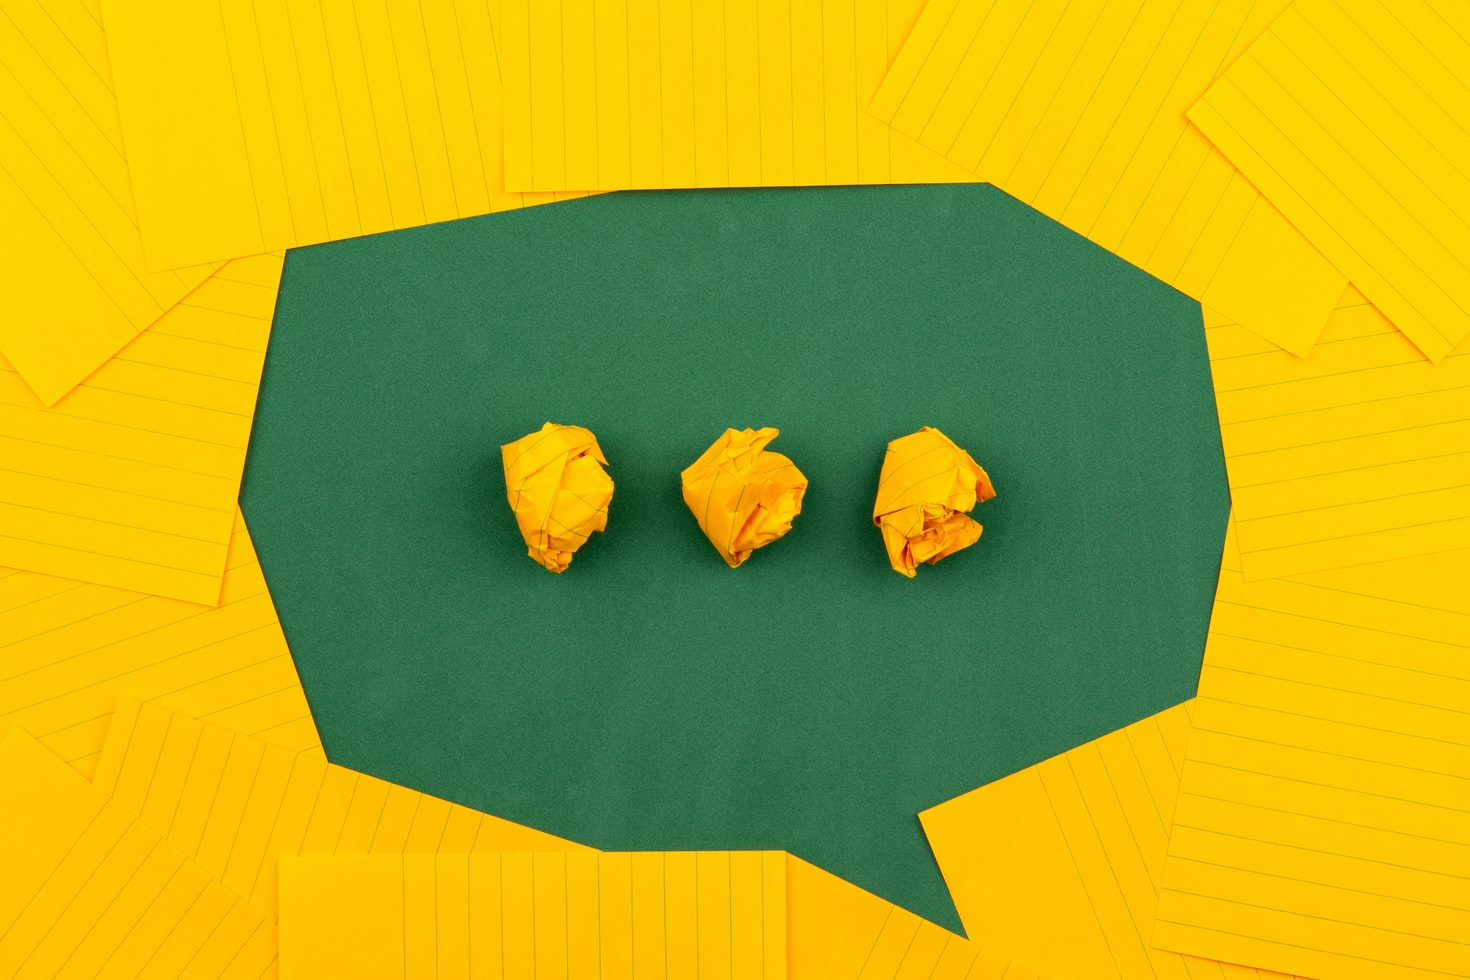 Three yellow scrunched up notes as balls against a green background shaped like a message bubble